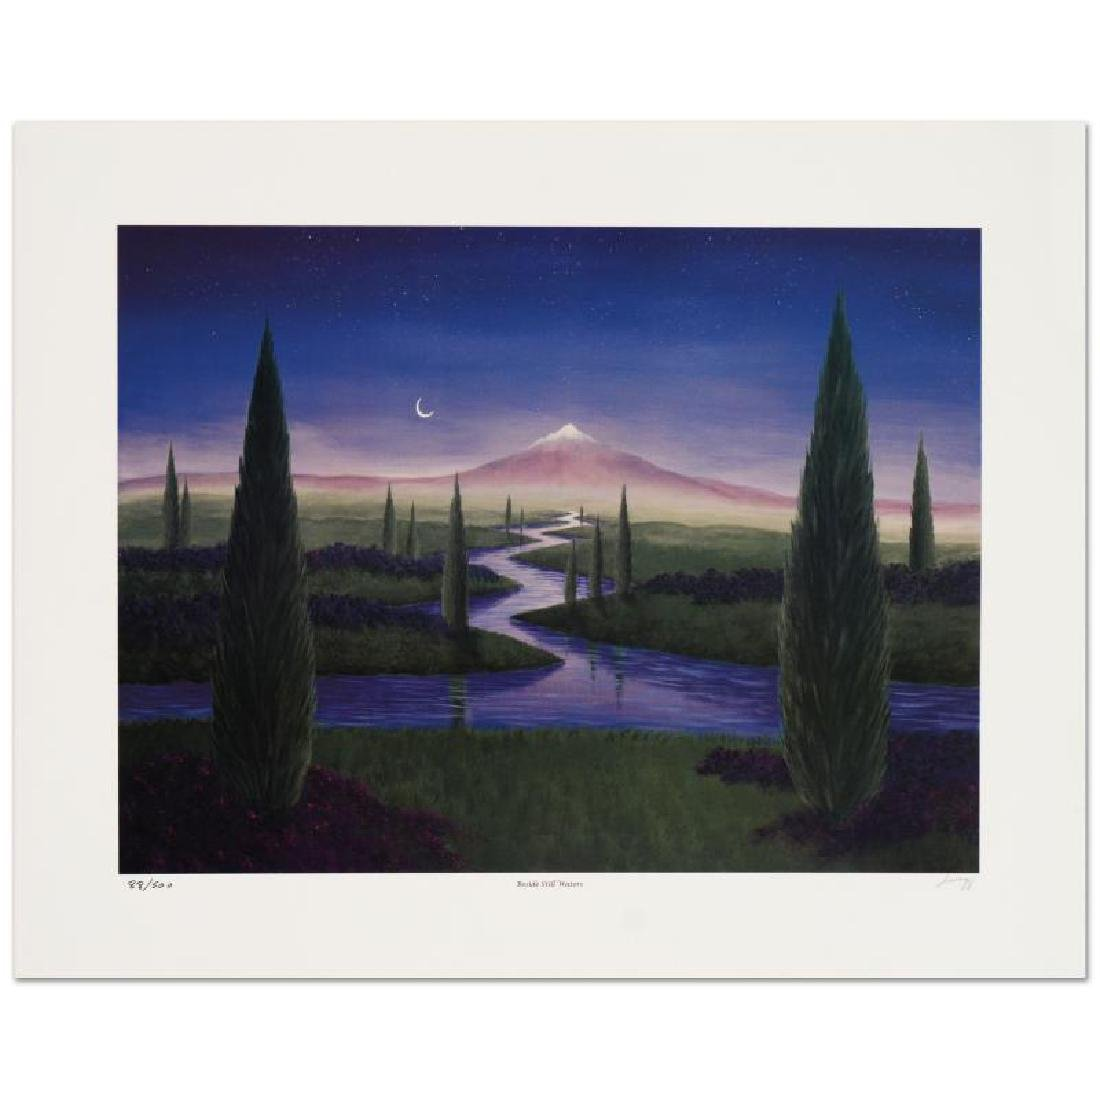 """Steven Lavaggi - """"Beside Still Waters"""" Limited Edition"""